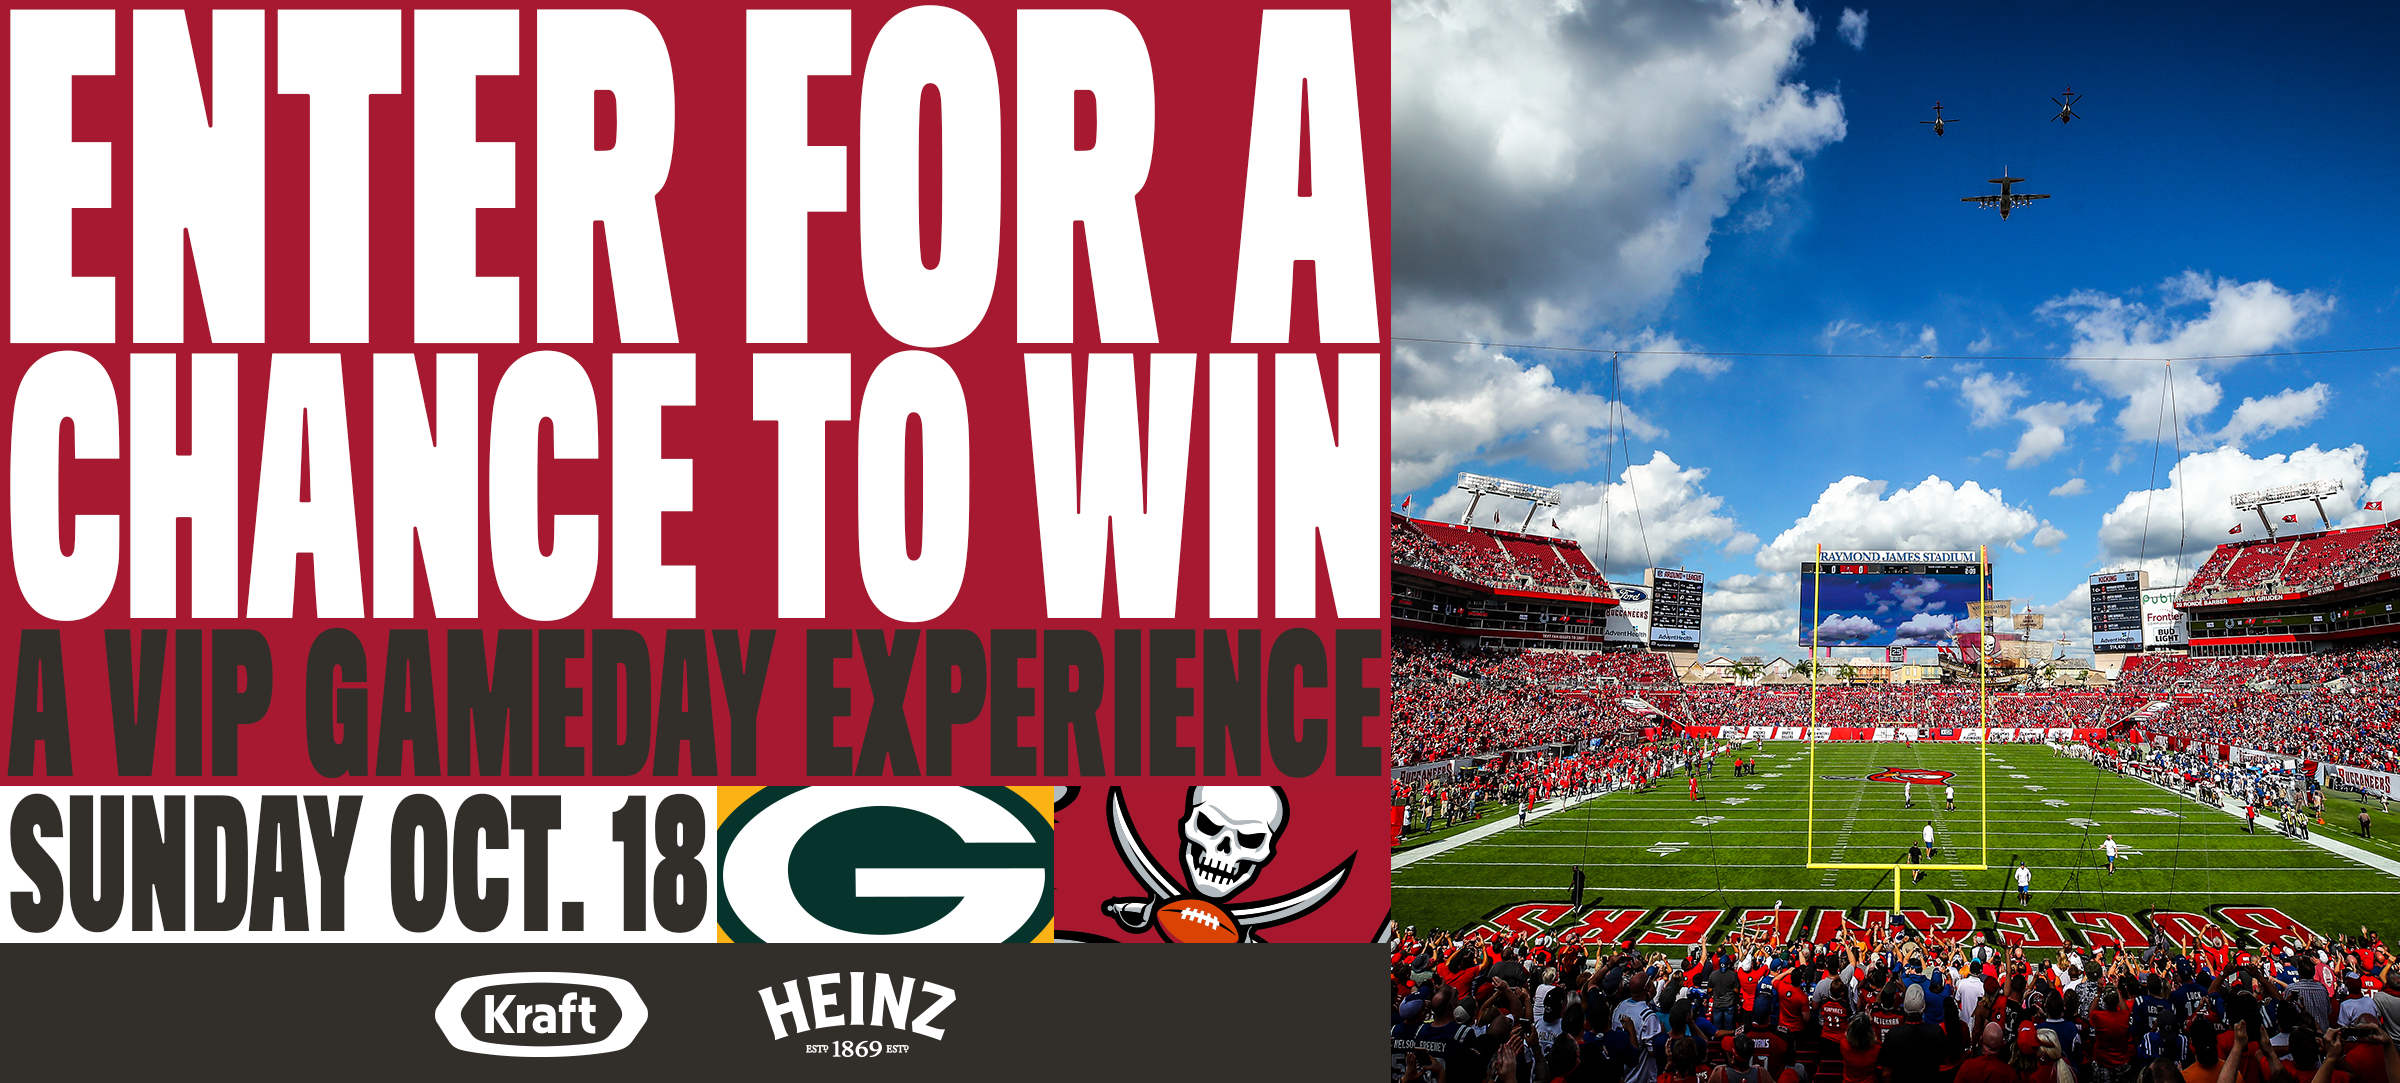 Enter for a chance to win a vip gameday experience. sunday oct